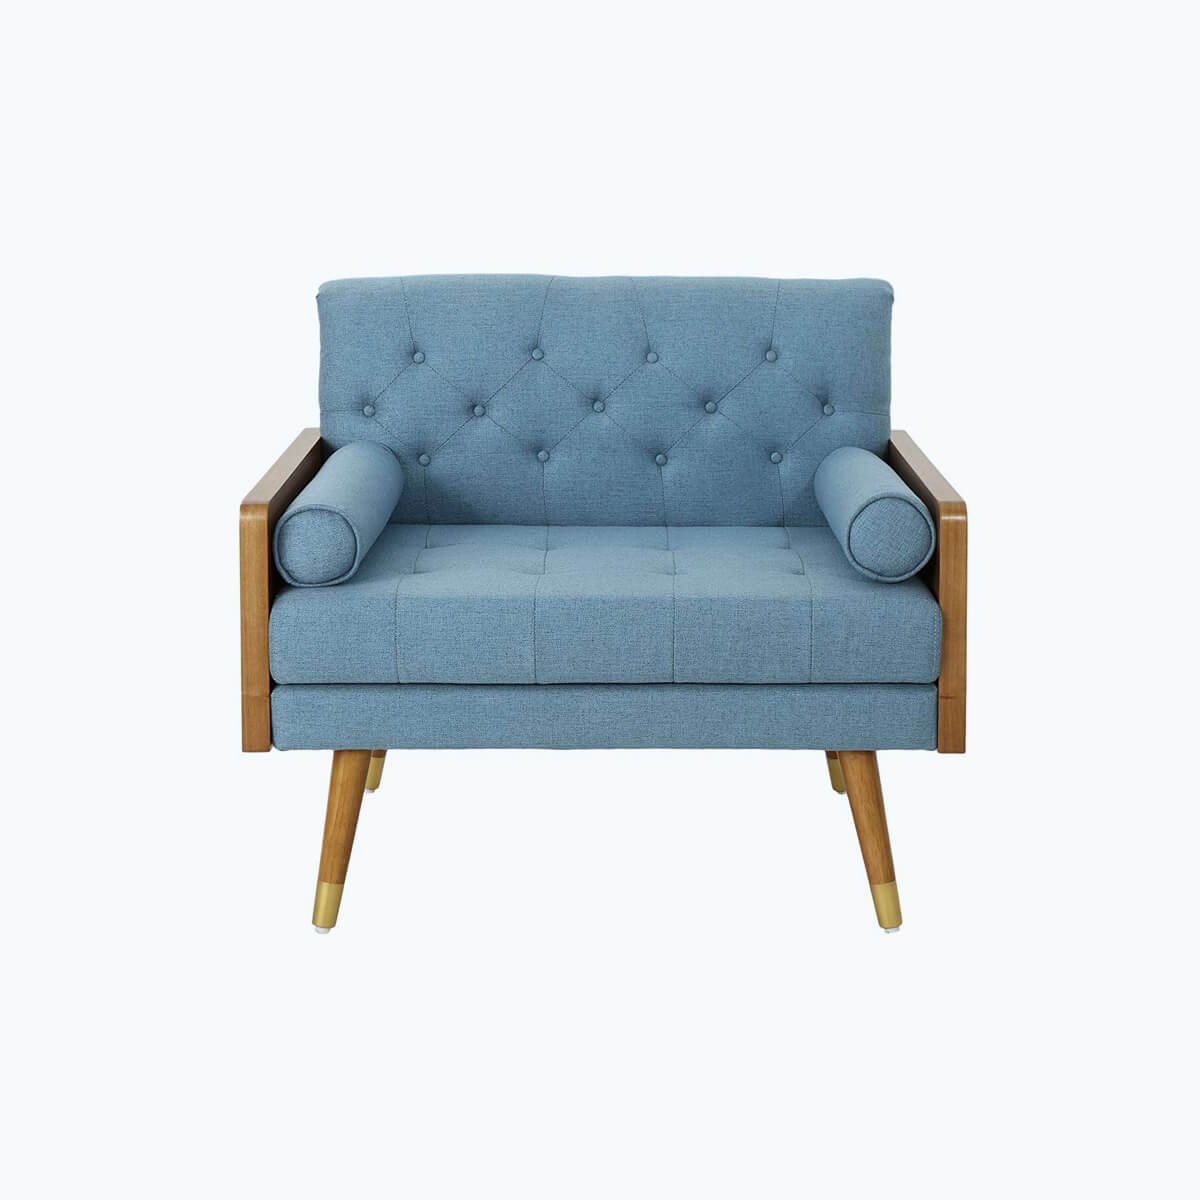 Picture of: Club Chair Blue Fabric Mid Century Modern Furniture Midmod